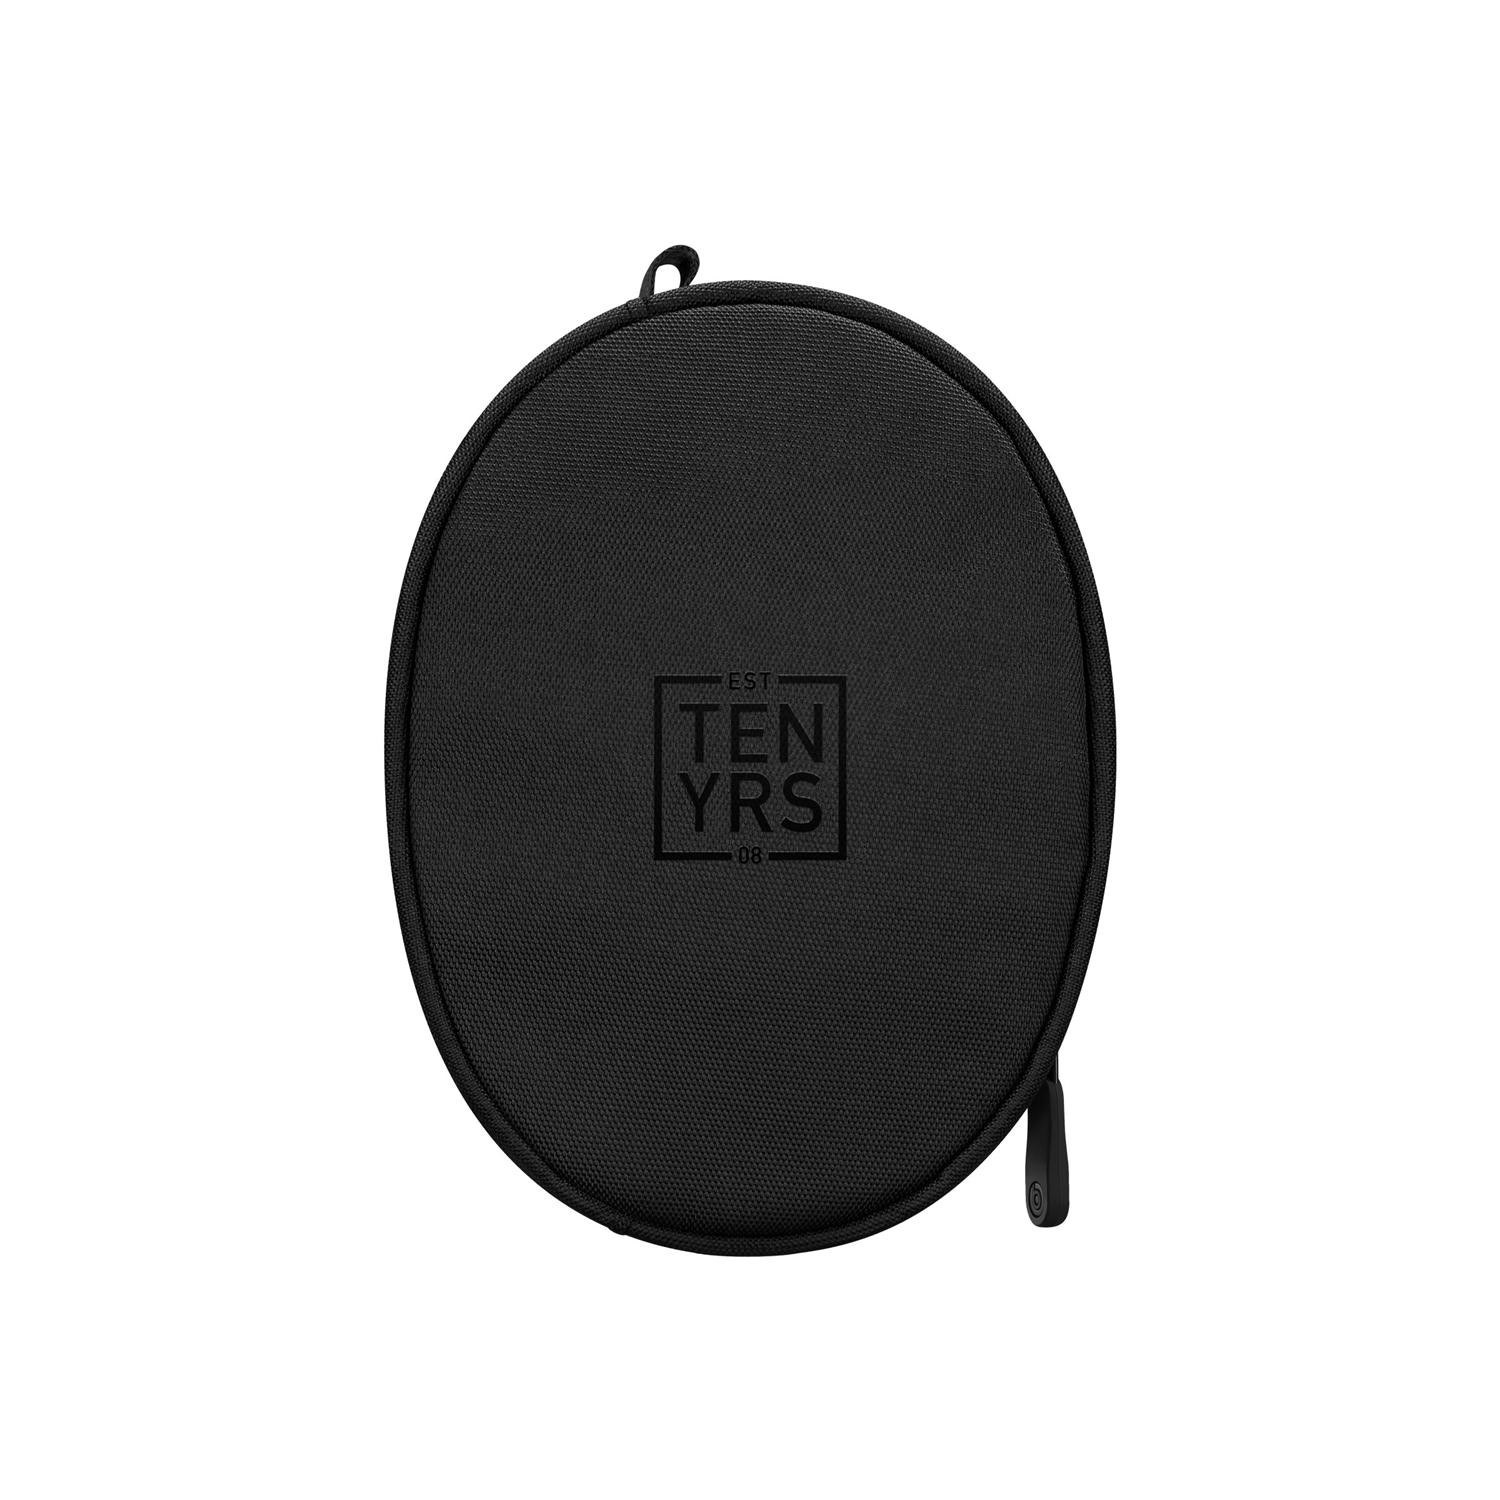 Beats Solo3 Wireless On Ear Headphones The Beats Decade Collection Defiant Black Red Laptops Direct